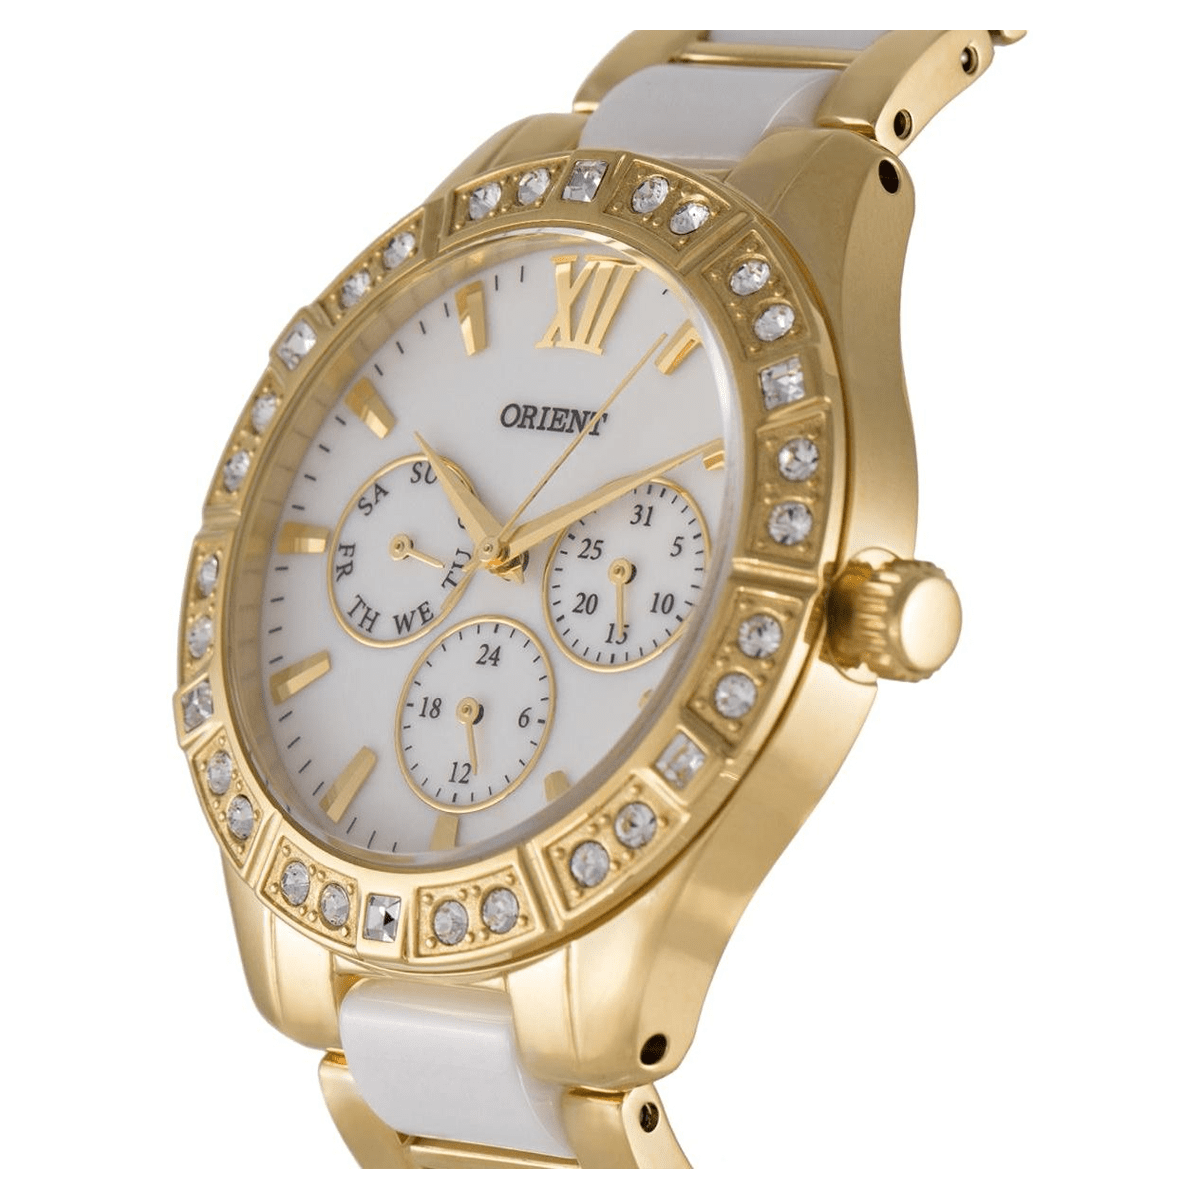 Orient Women's Gold Plated White Dial Ceramic Band Watch - Round - SSW01002